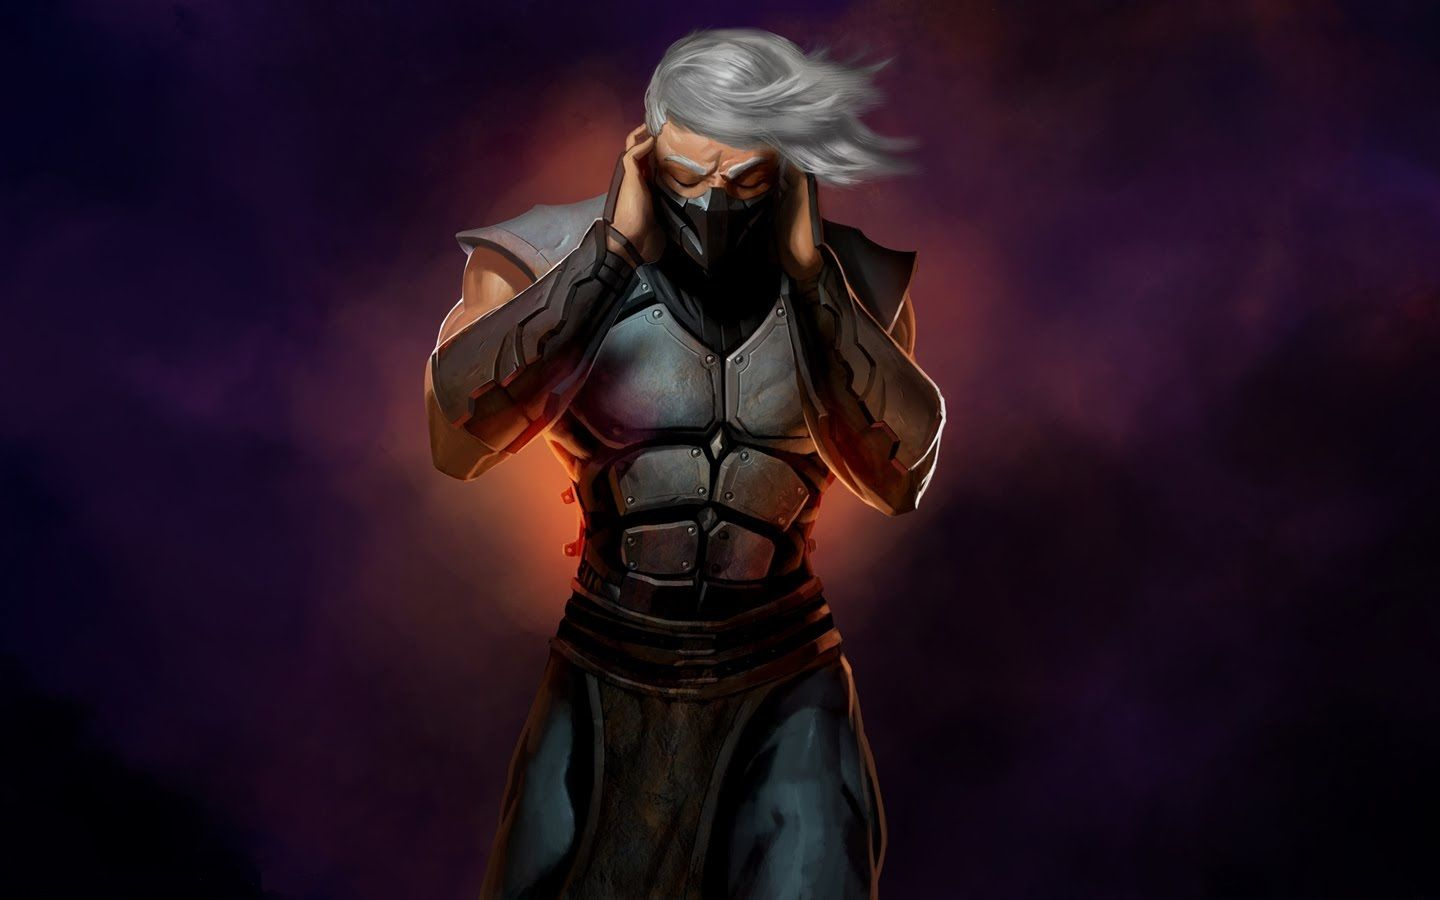 Smoke Mortal Kombat 4k Wallpapers Top Free Smoke Mortal Kombat 4k